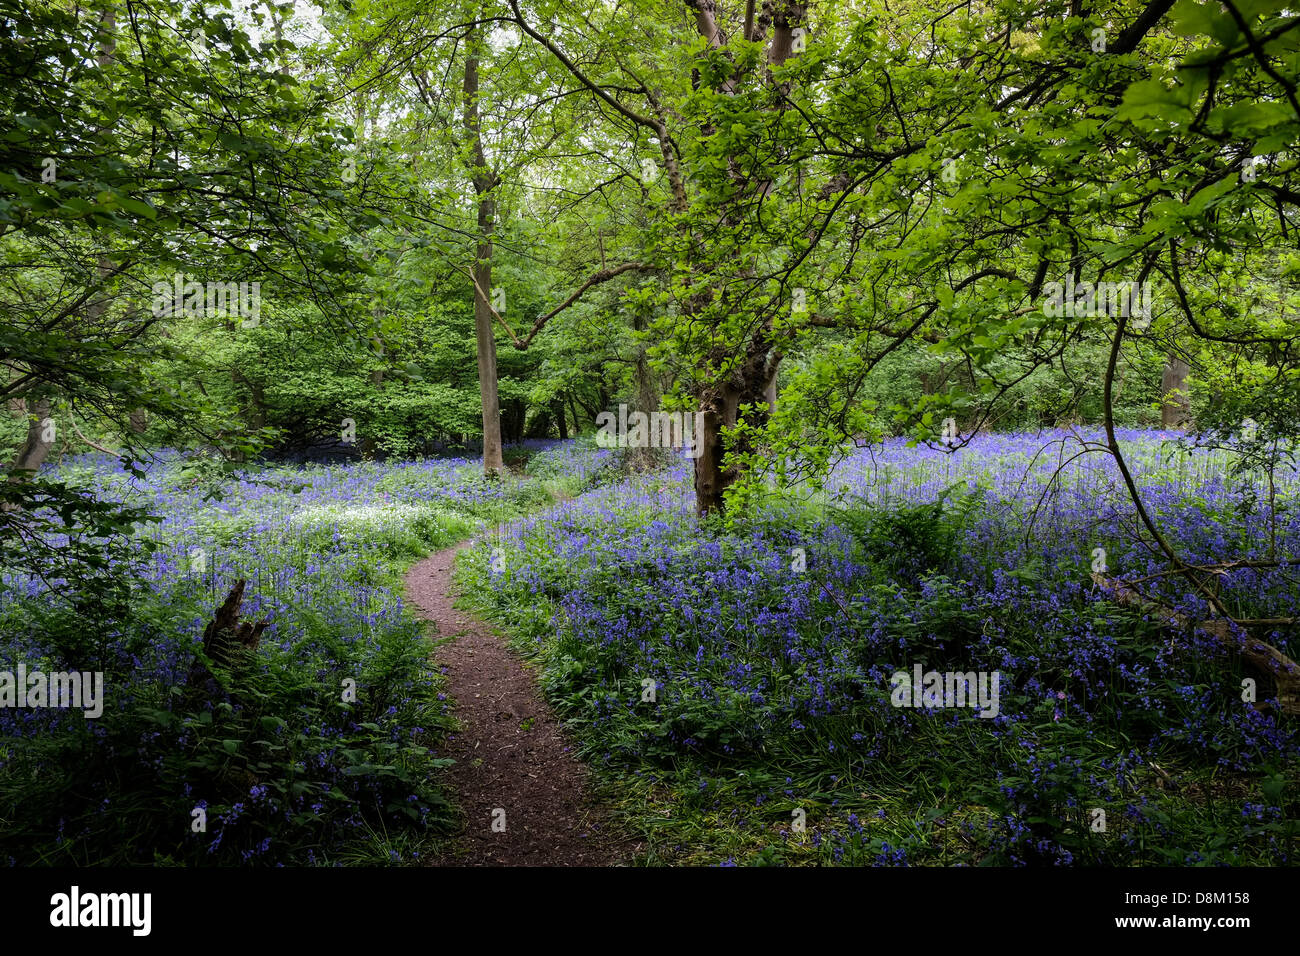 A path through bluebells in an Essex woodland. Stock Photo